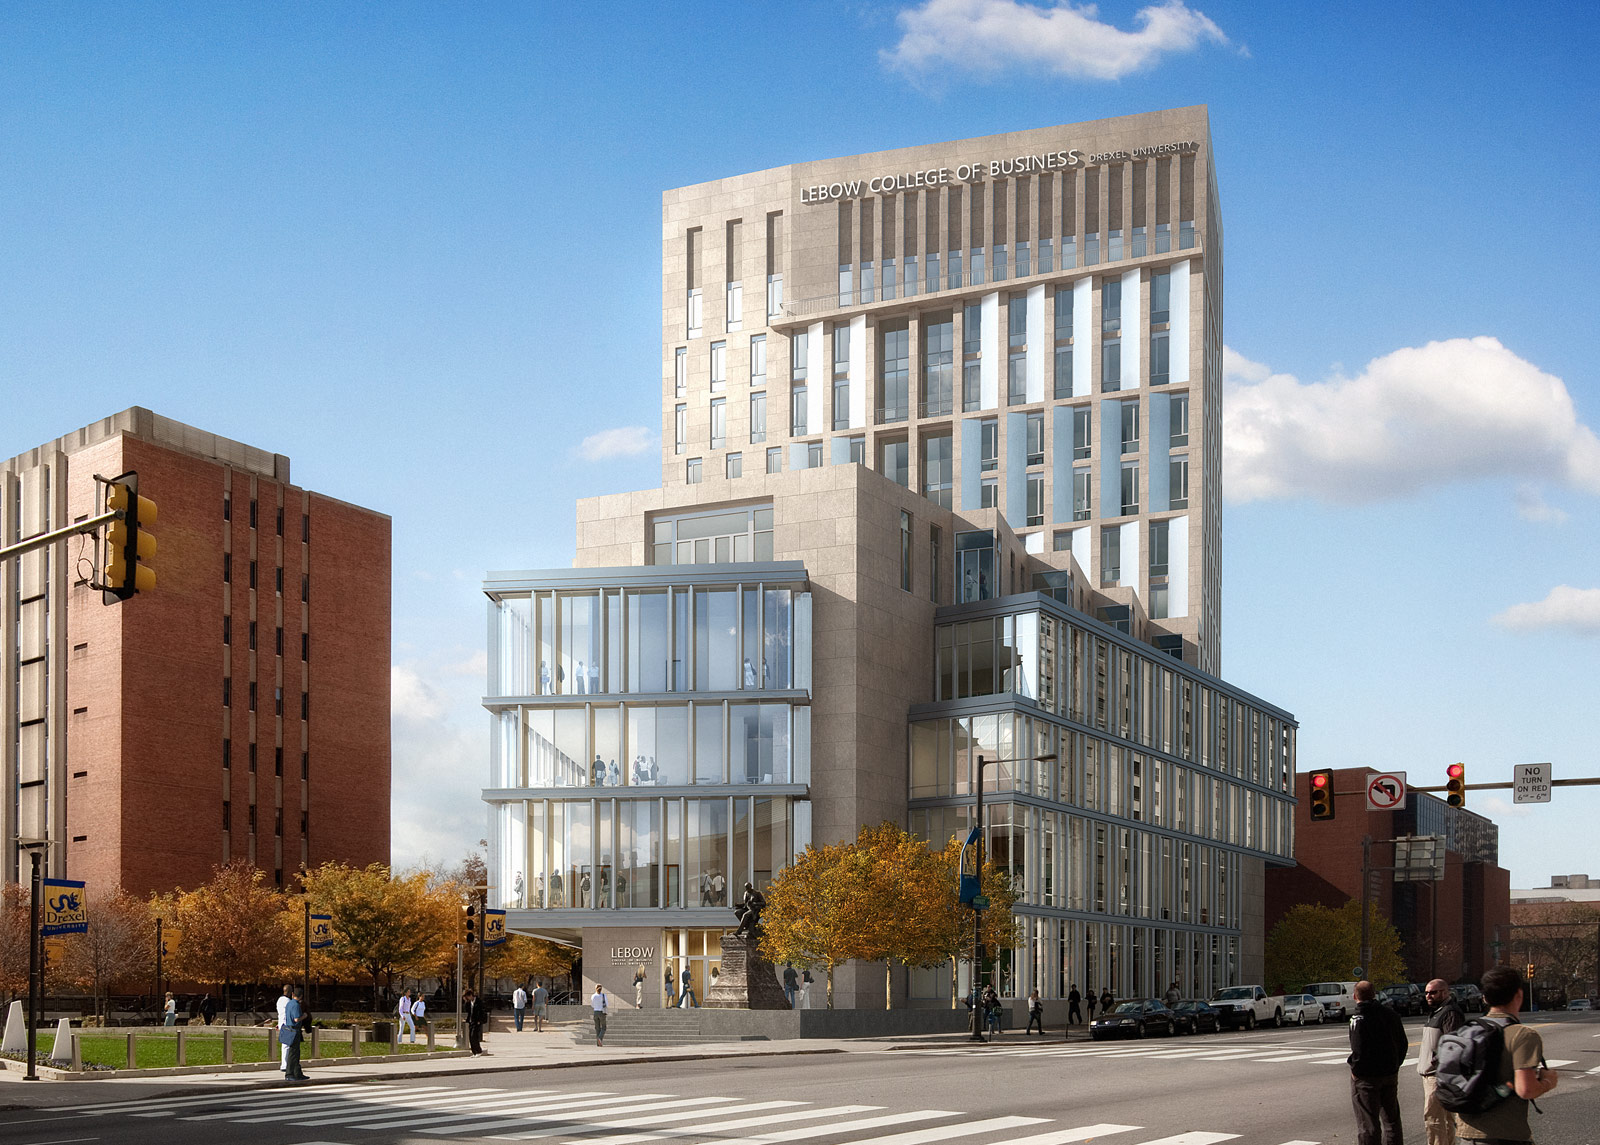 New Lebow College of Business from Market Street | Drexel University